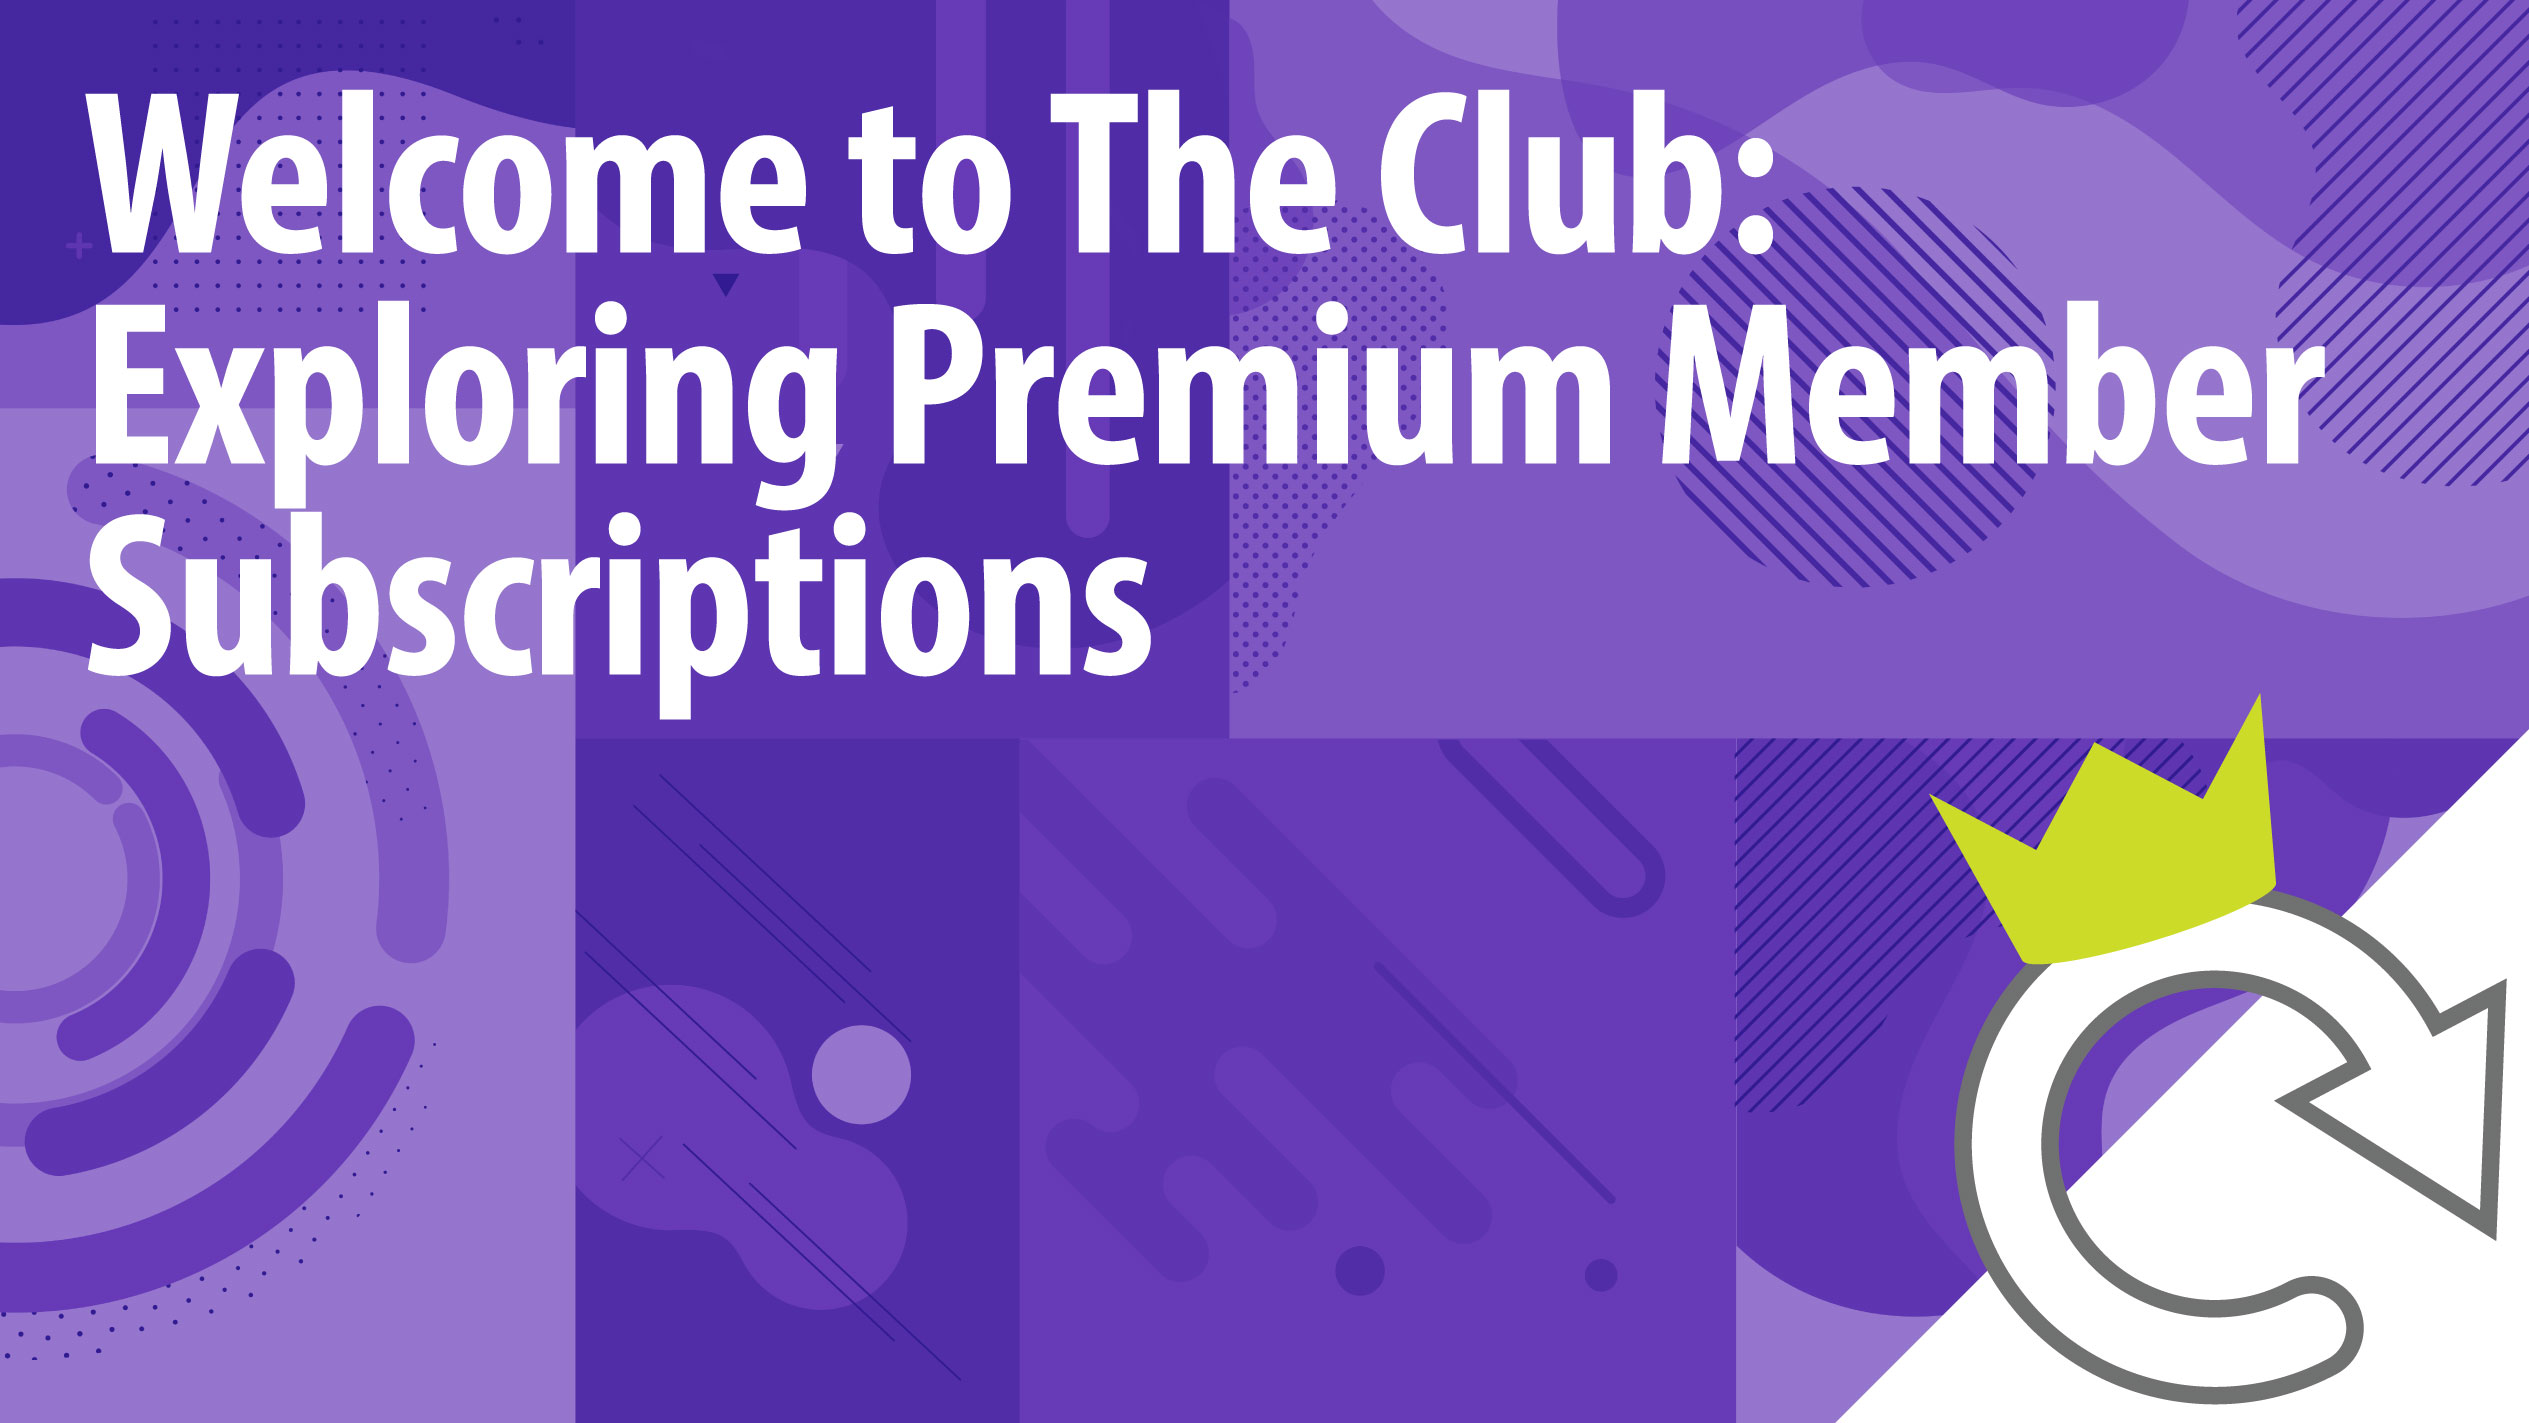 Welcome to the Club: Exploring Premium Member Subscriptions